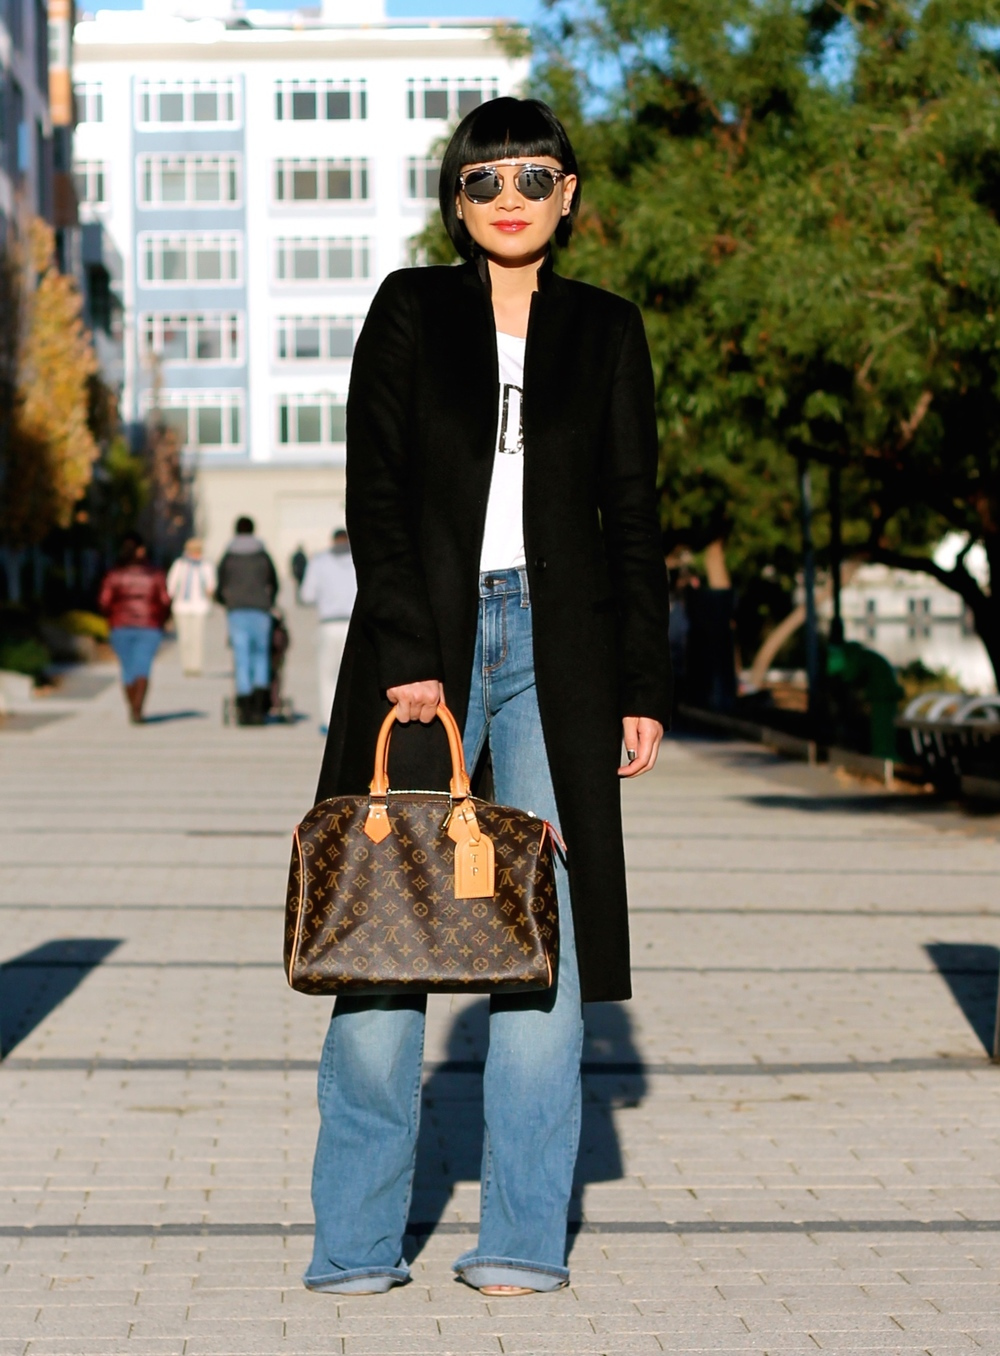 All Saints coat, Banana Republic jeans, Club Monaco tshirt, Louis Vuitton bag, Dior sunglasses